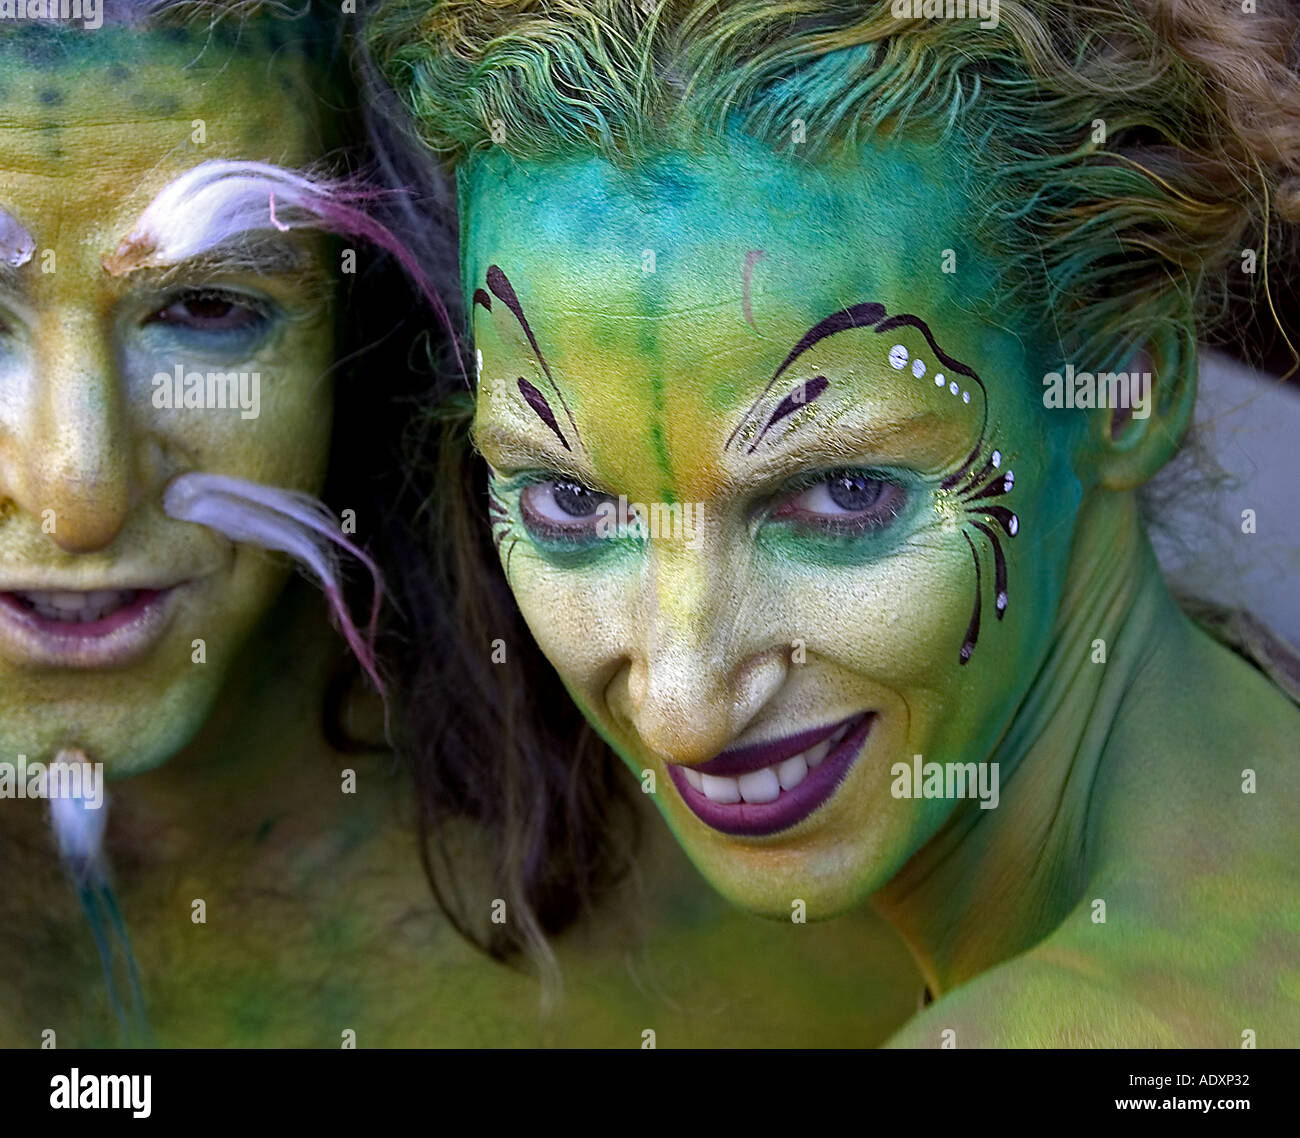 Painted faces - Stock Image